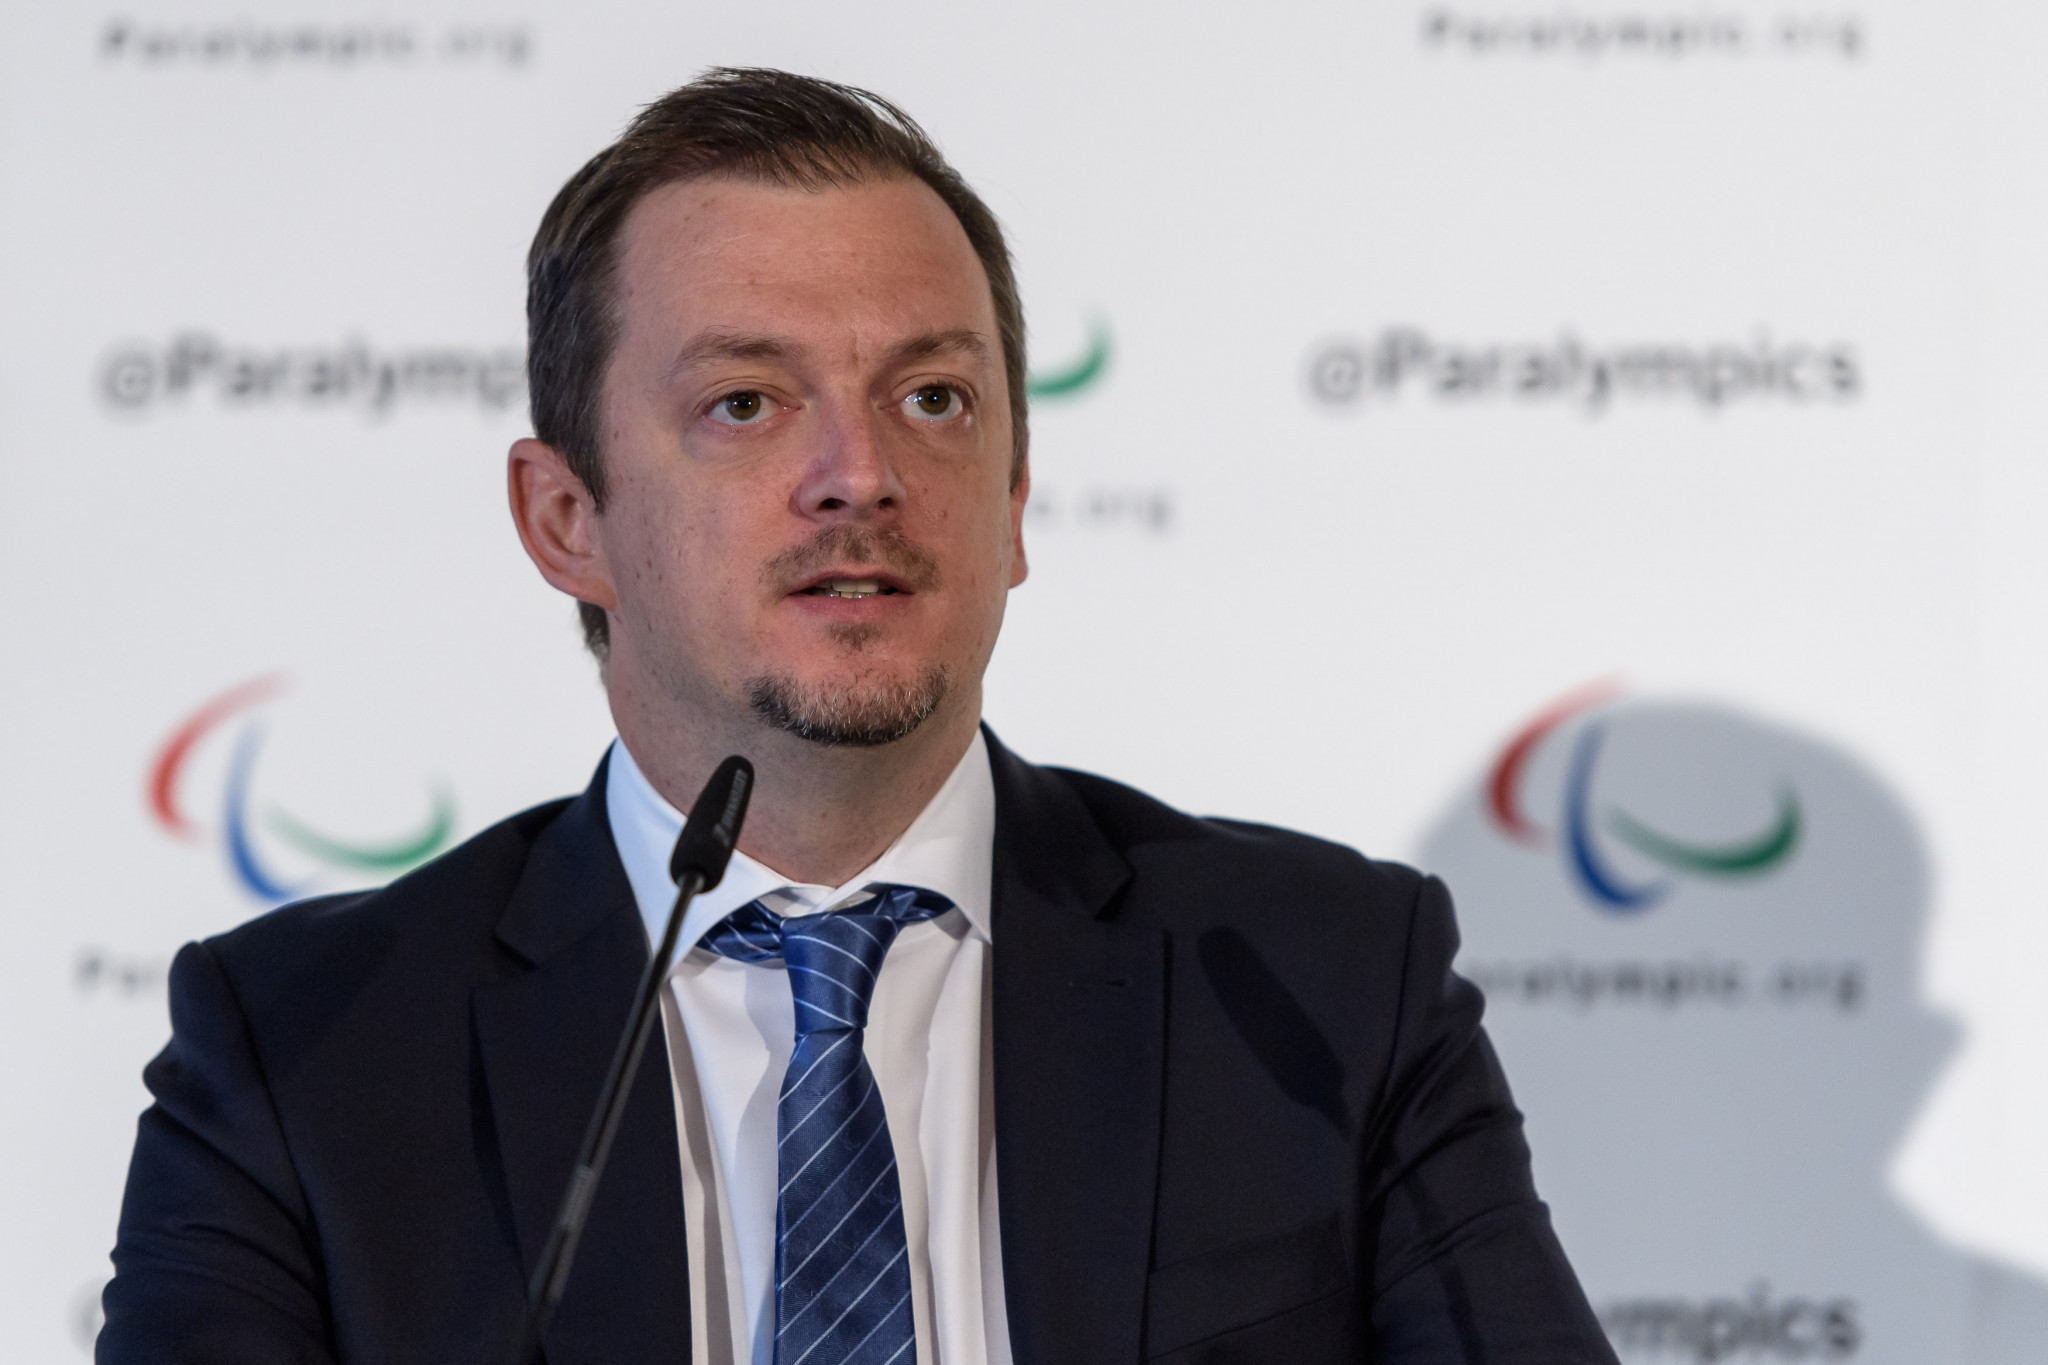 IPC President Andrew Parsons claimed it would be safe for athletes to hold the marathons during the 2020 Paralympic Games in Tokyo and not move them to Sapporo ©Getty Images